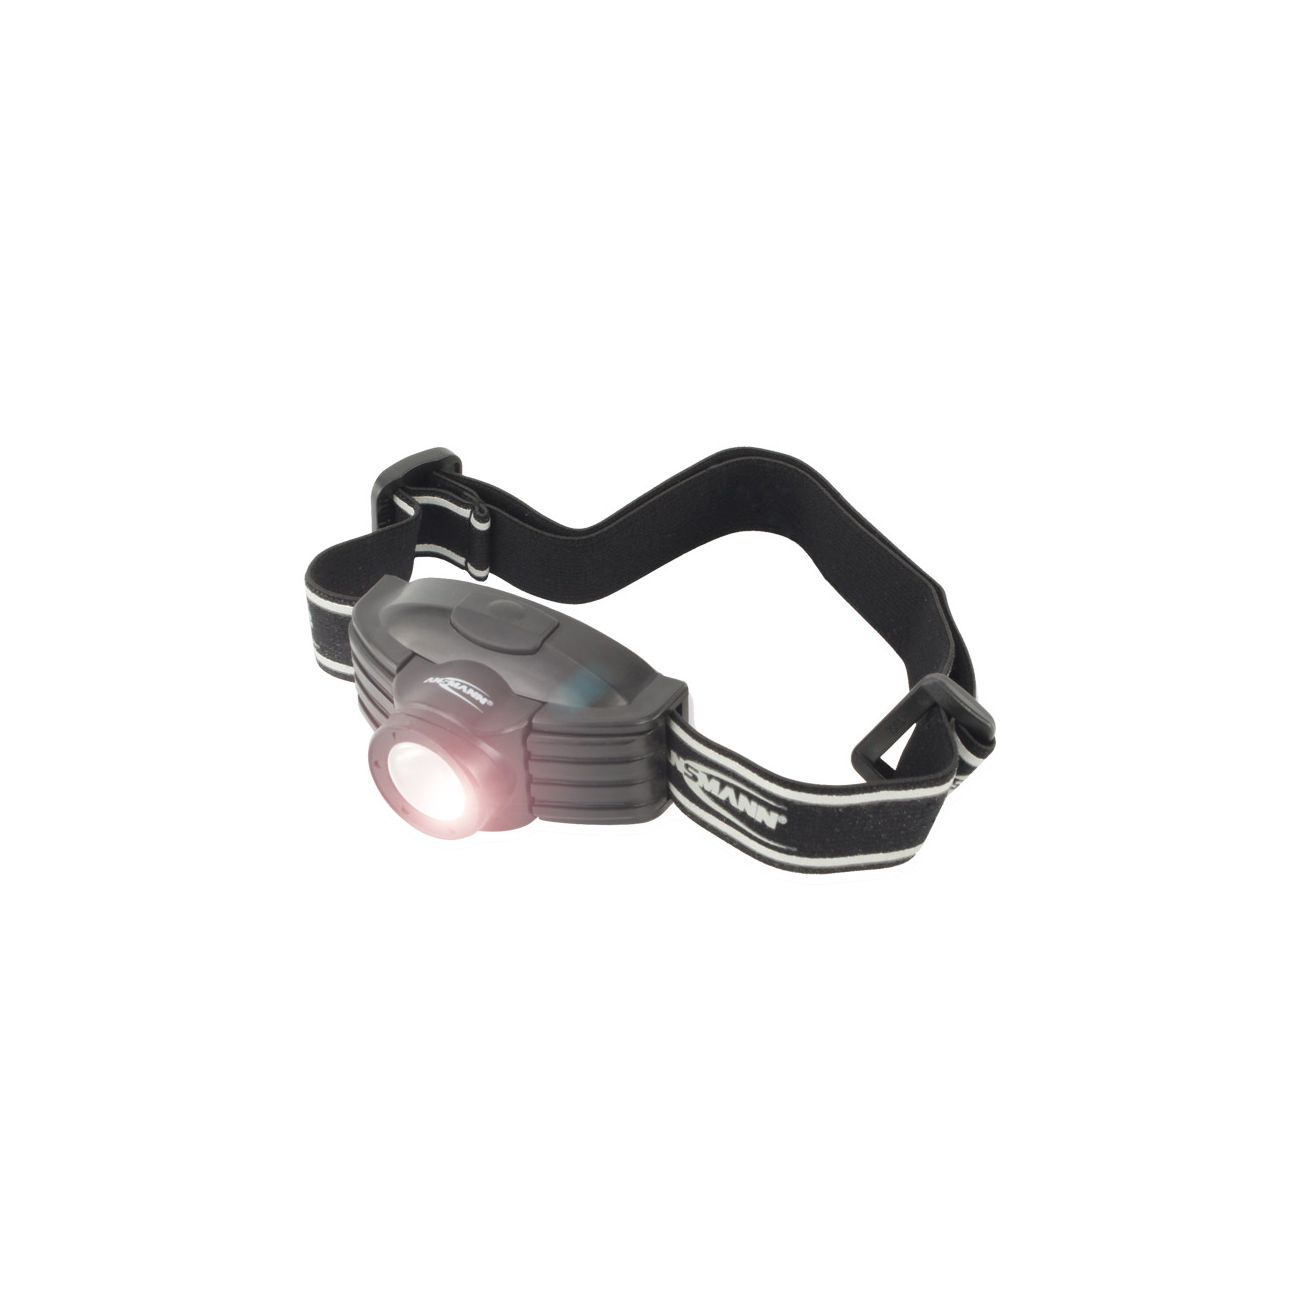 Ansmann Stirnlampe Headlight Future 150 Lumen schwarz 1